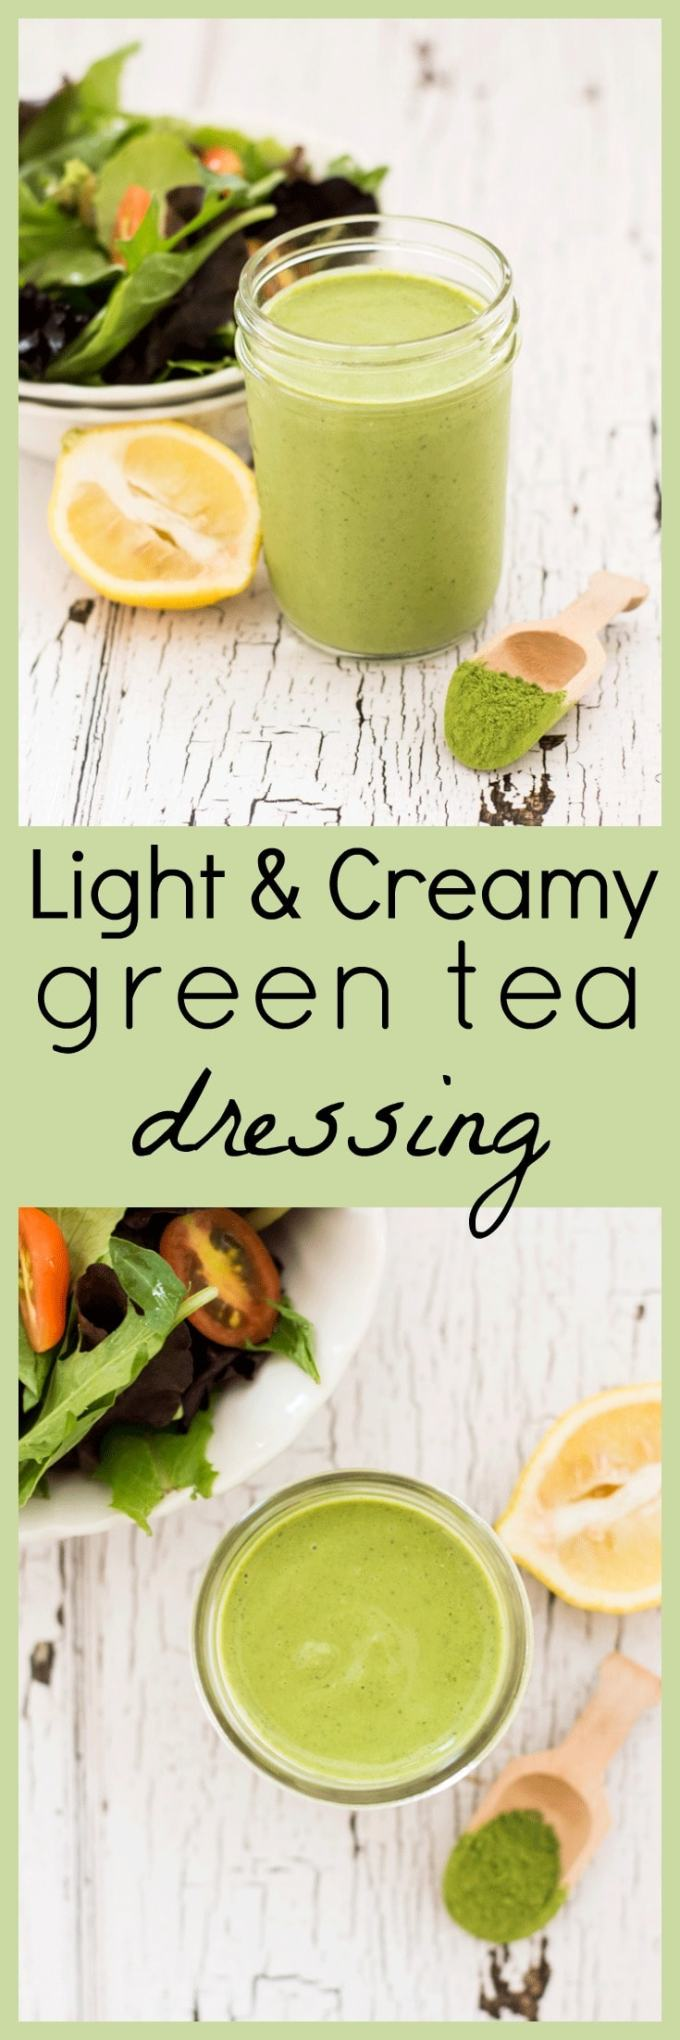 Kick your next salad up with a dollop of Light and Creamy Green Tea Salad Dressing. A lightened up twist on the classic green goddess salad dressing.